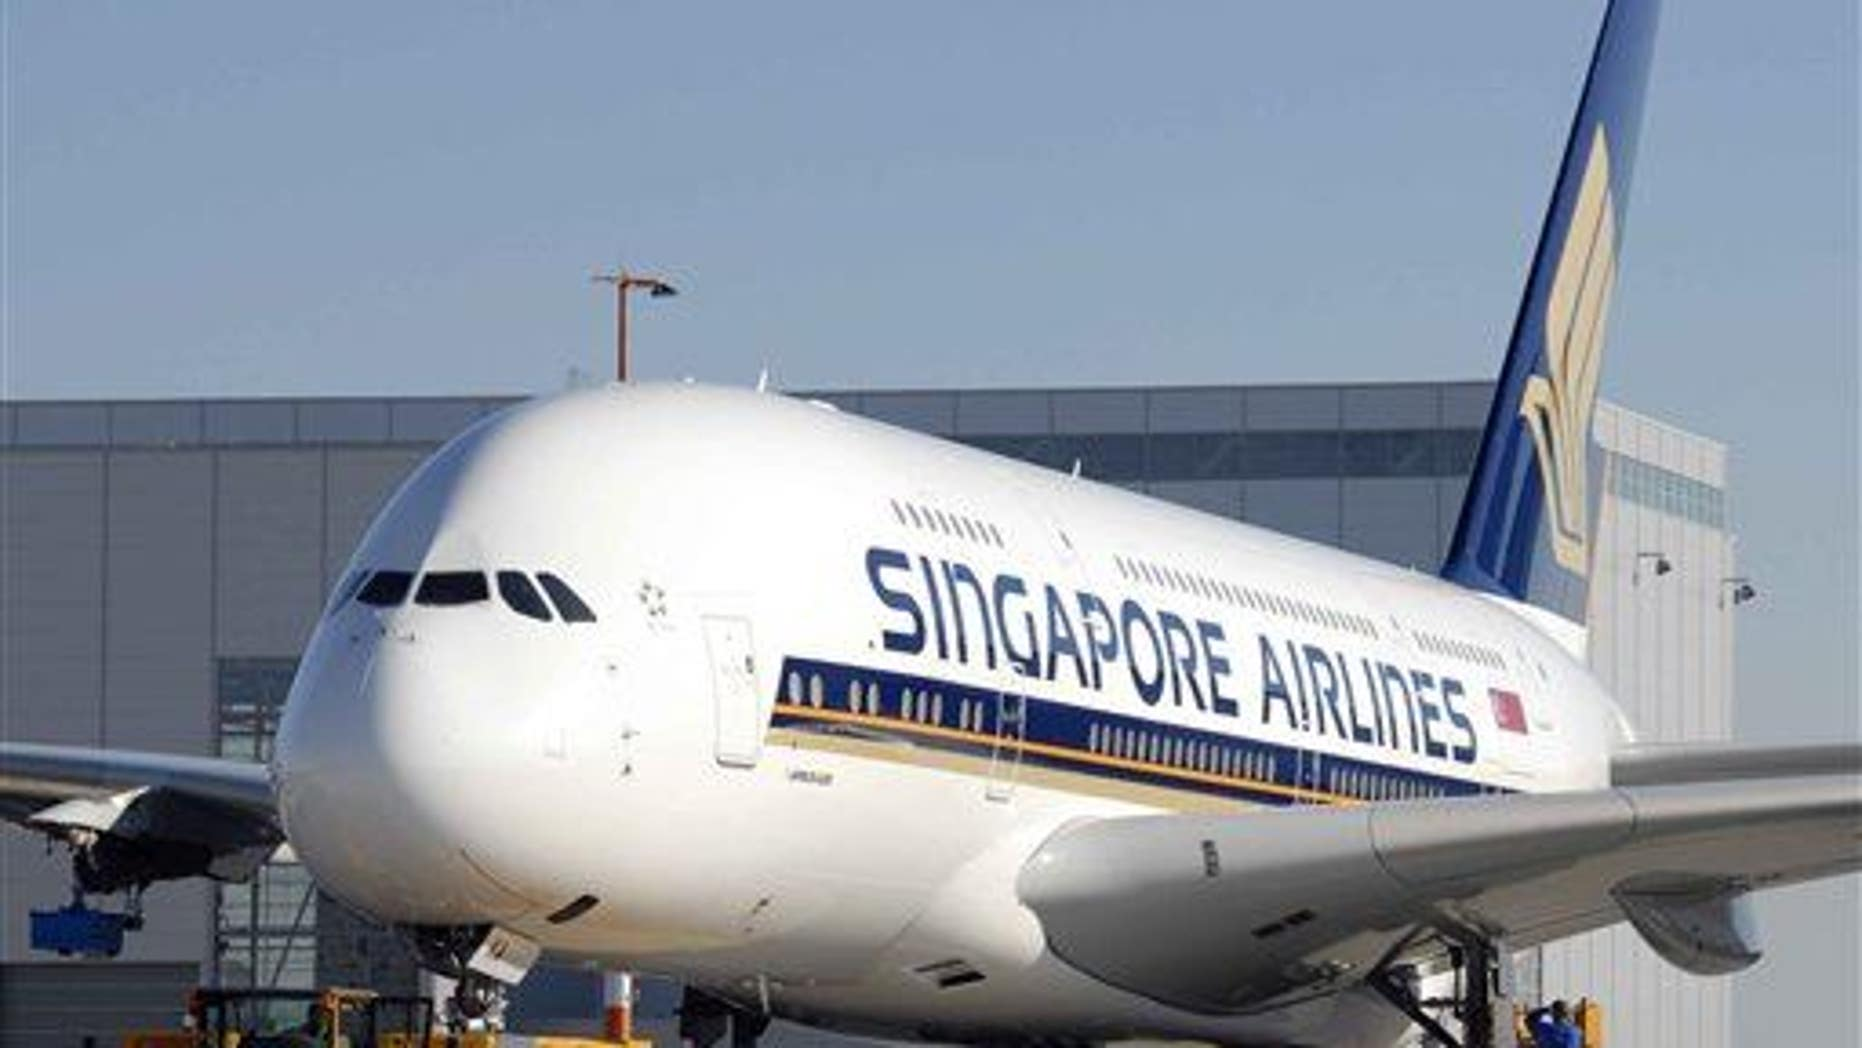 File photo of a Singapore Airlines aircraft.